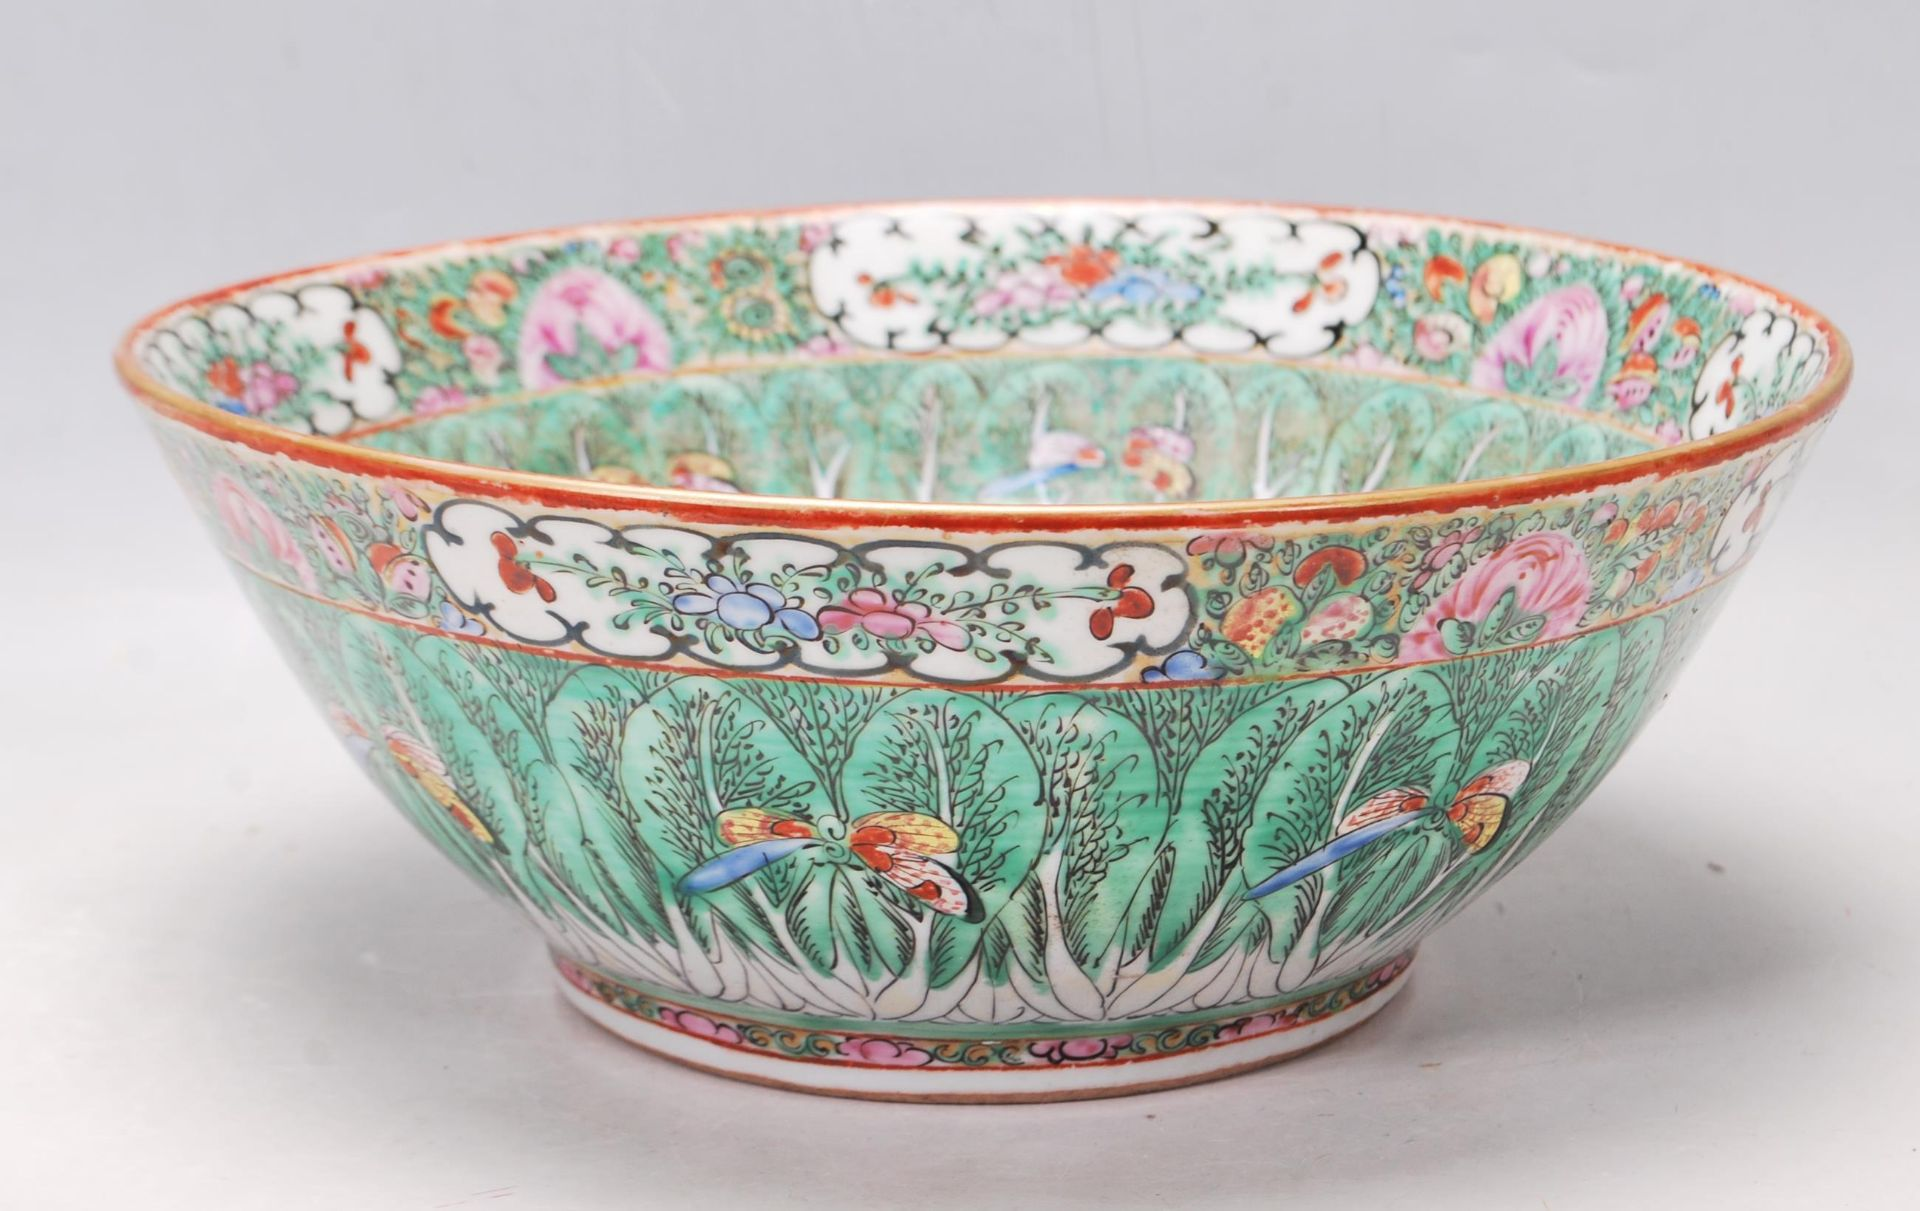 19TH CENTURY CHINESE ORIENTAL CENTRE PIECE BOWL - Image 4 of 11